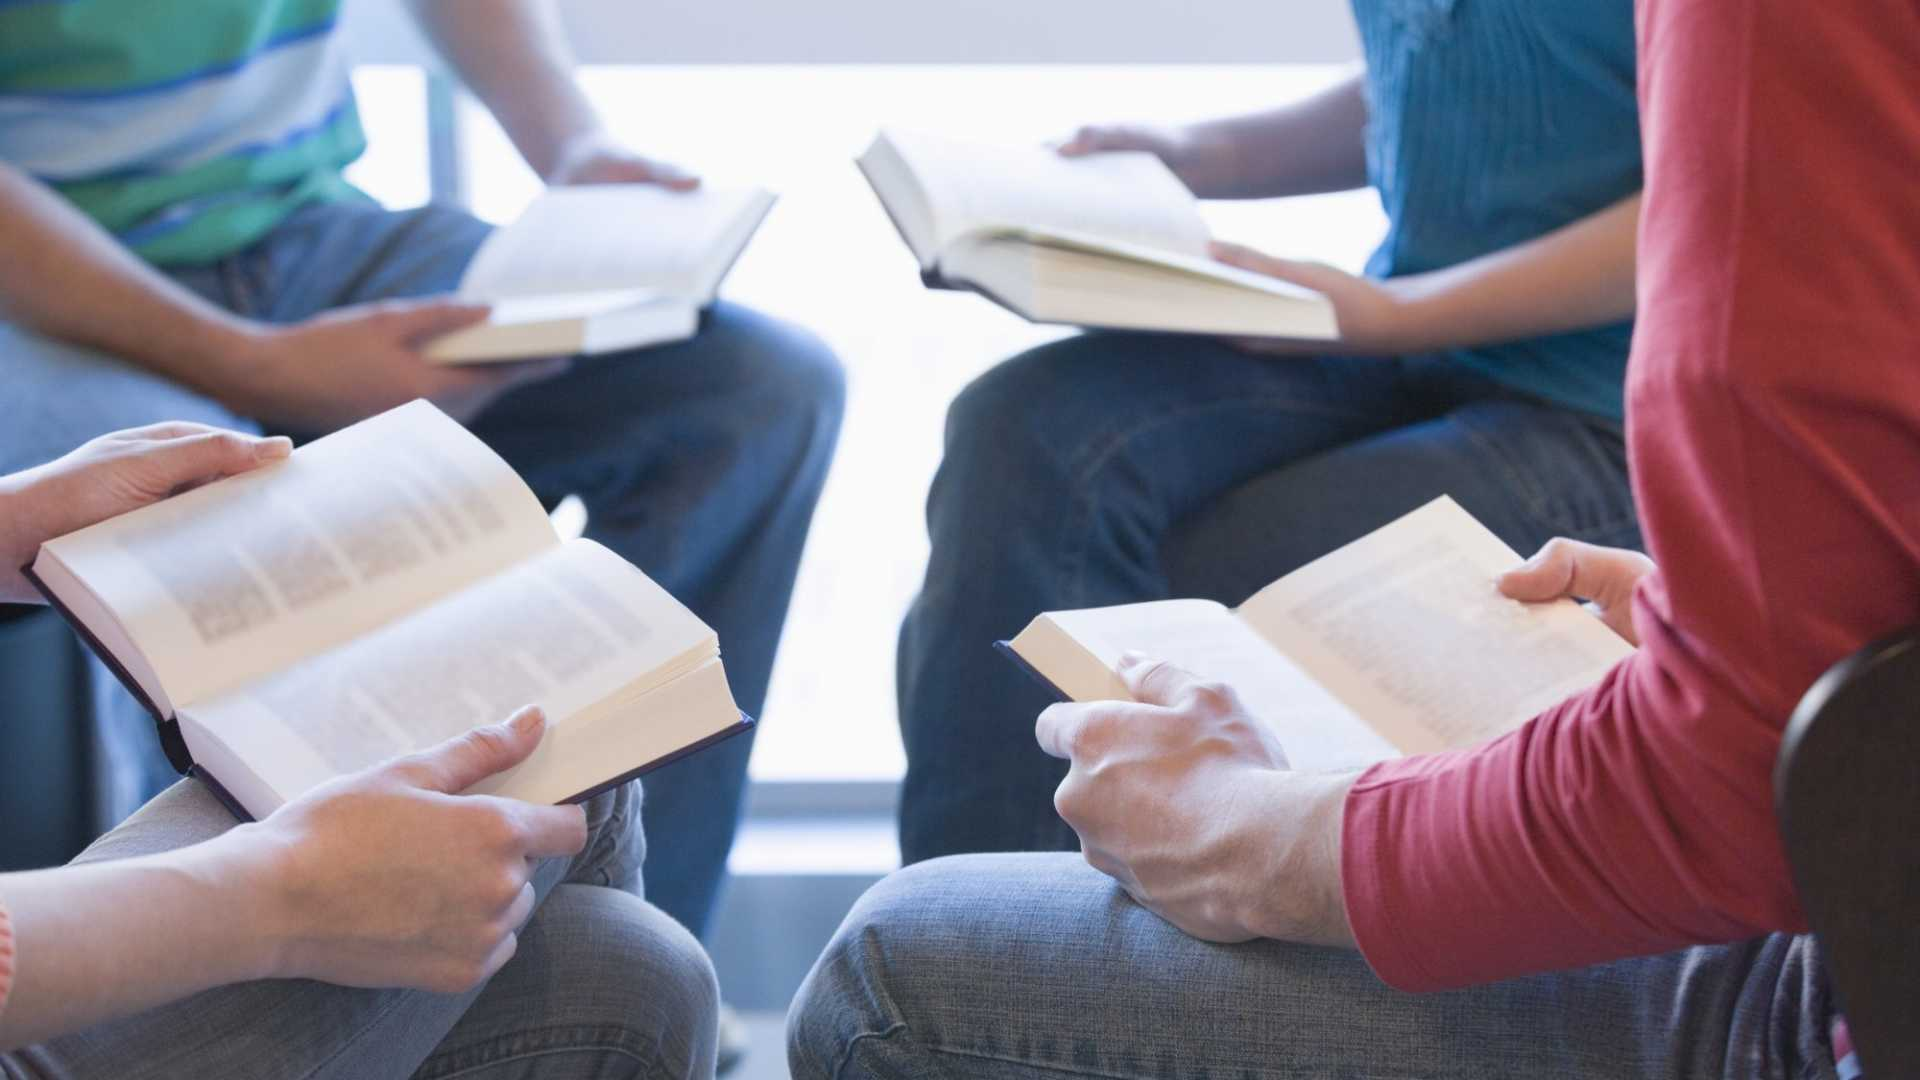 Want an Easy Way to Open Up Your Mind and Improve Your Business Skills? Join a Book Club